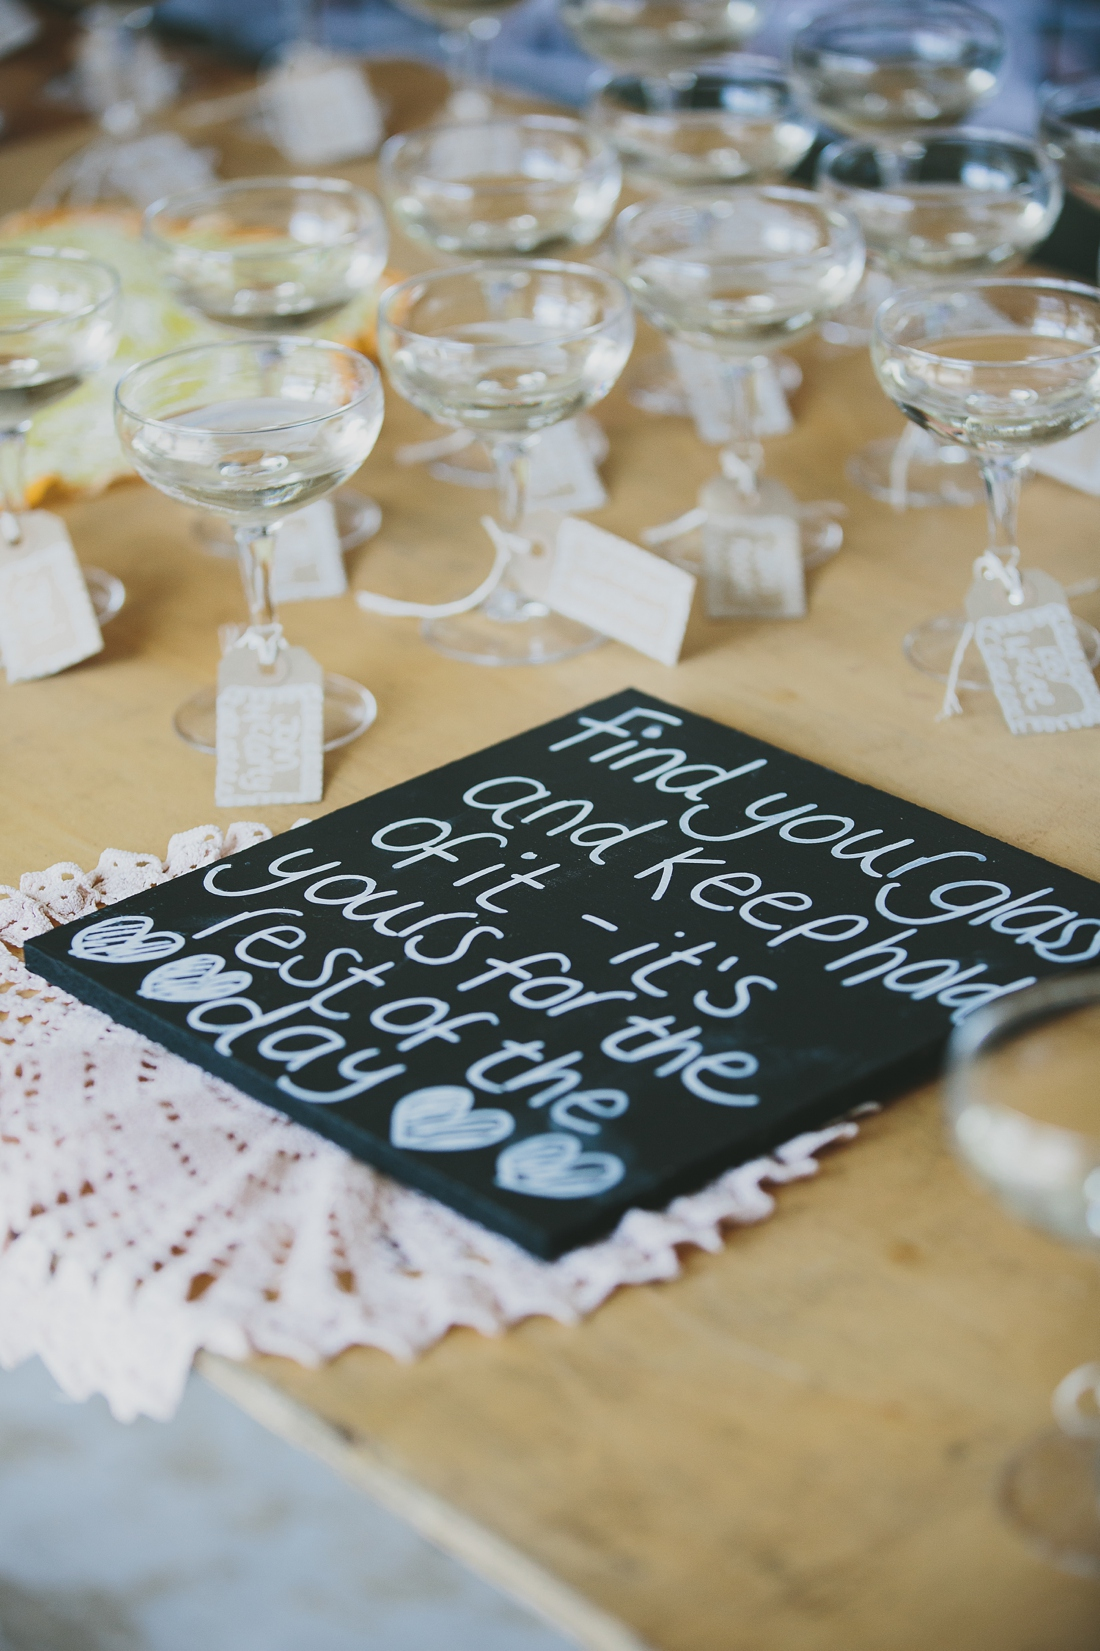 Champagne table by Vanilla Rose Weddings Image Credit: McKinley Rodgers Photography